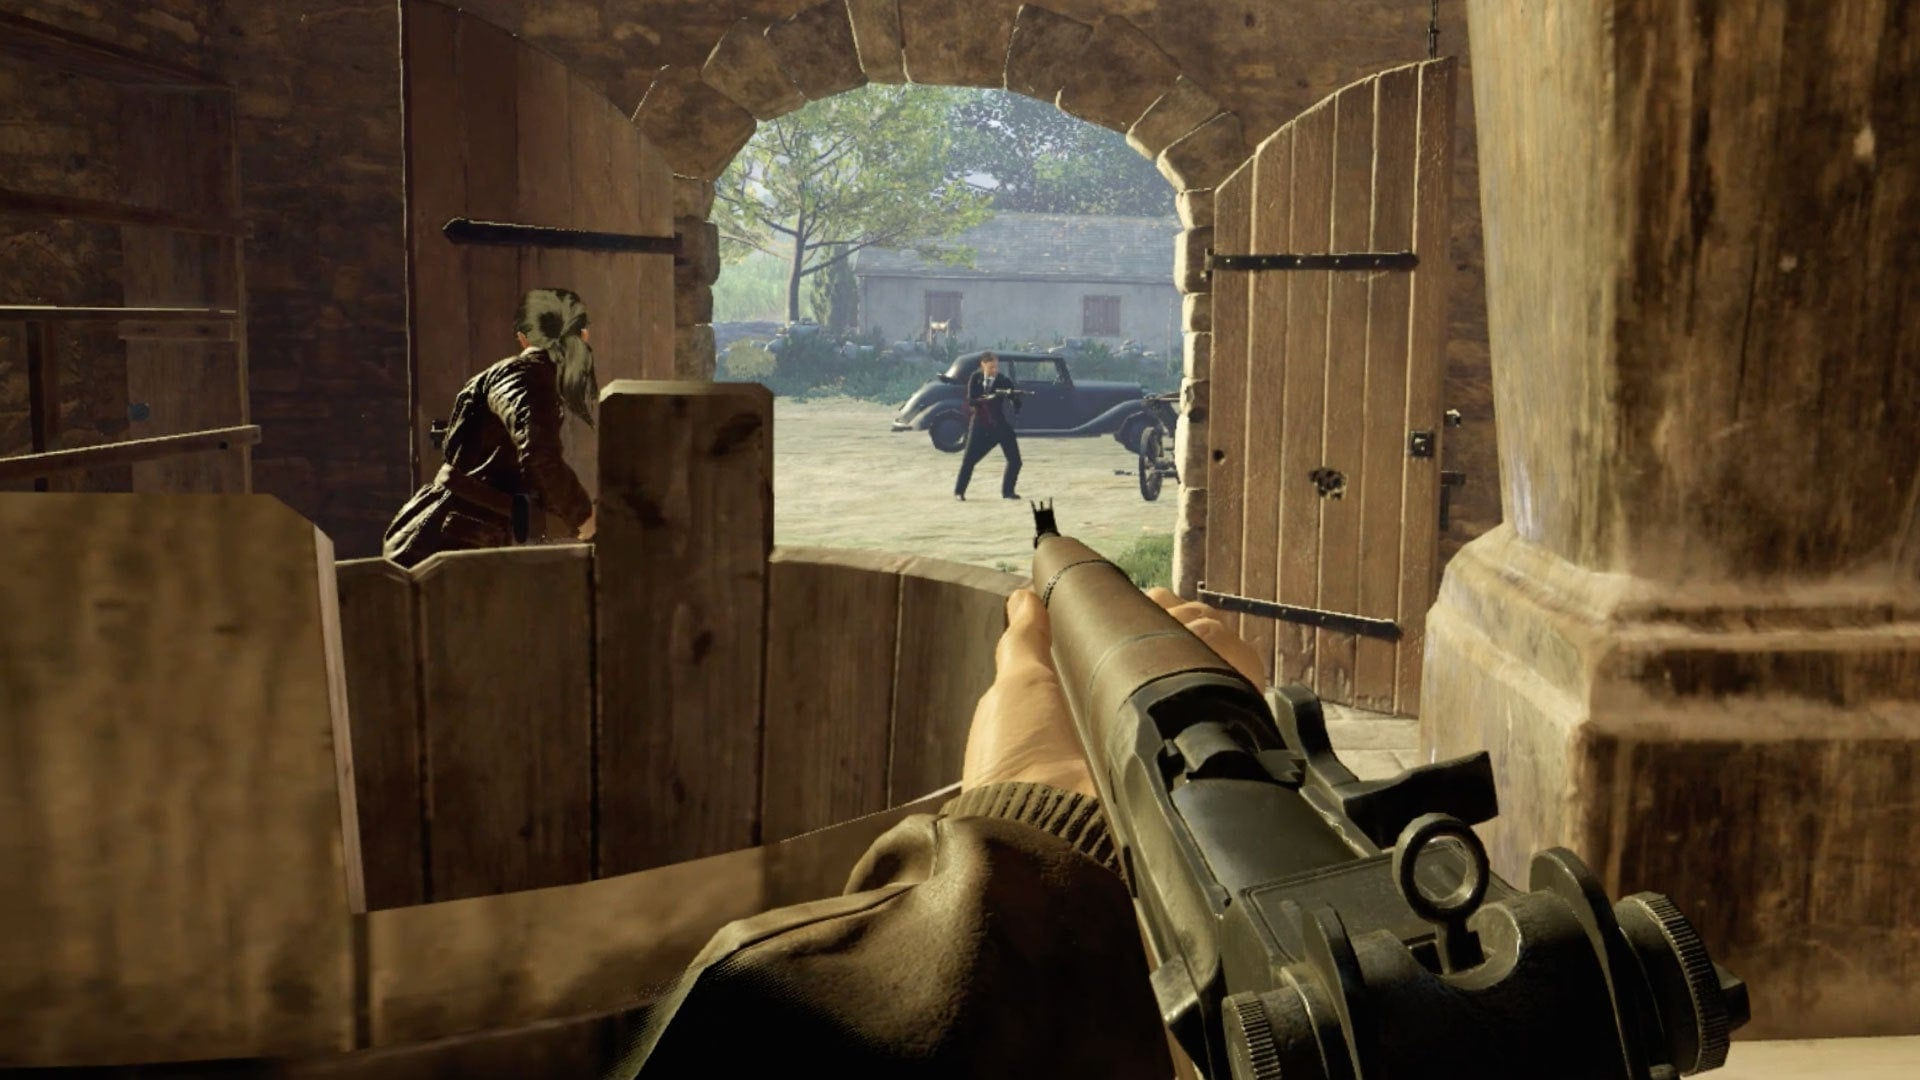 First person shooter games